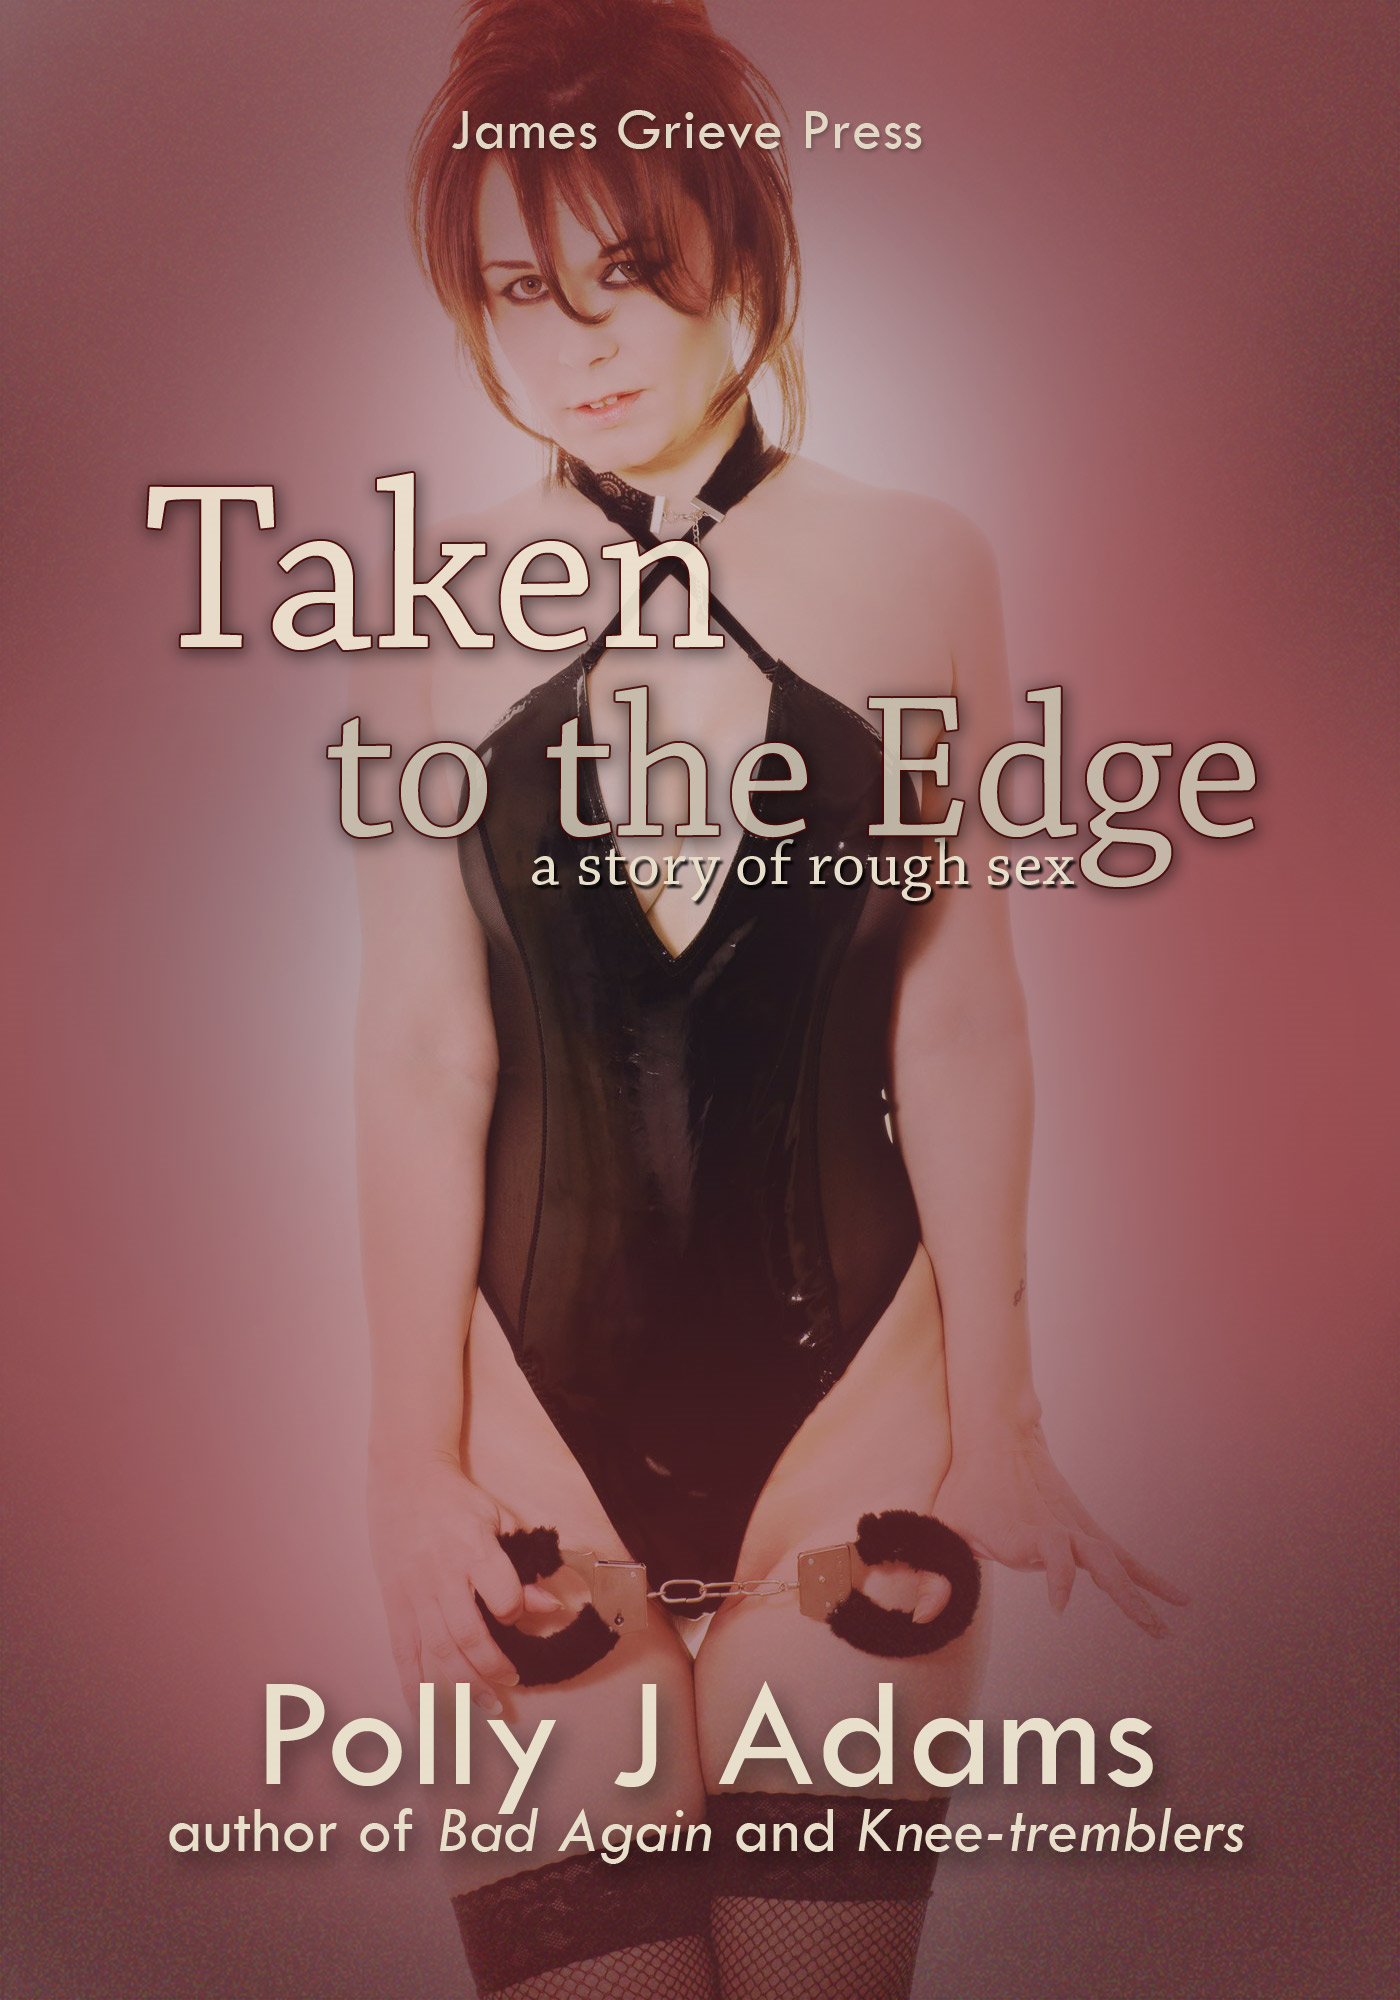 Taken to the Edge - a story of rough sex (bdsm, dubcon, bondage, domination and more)